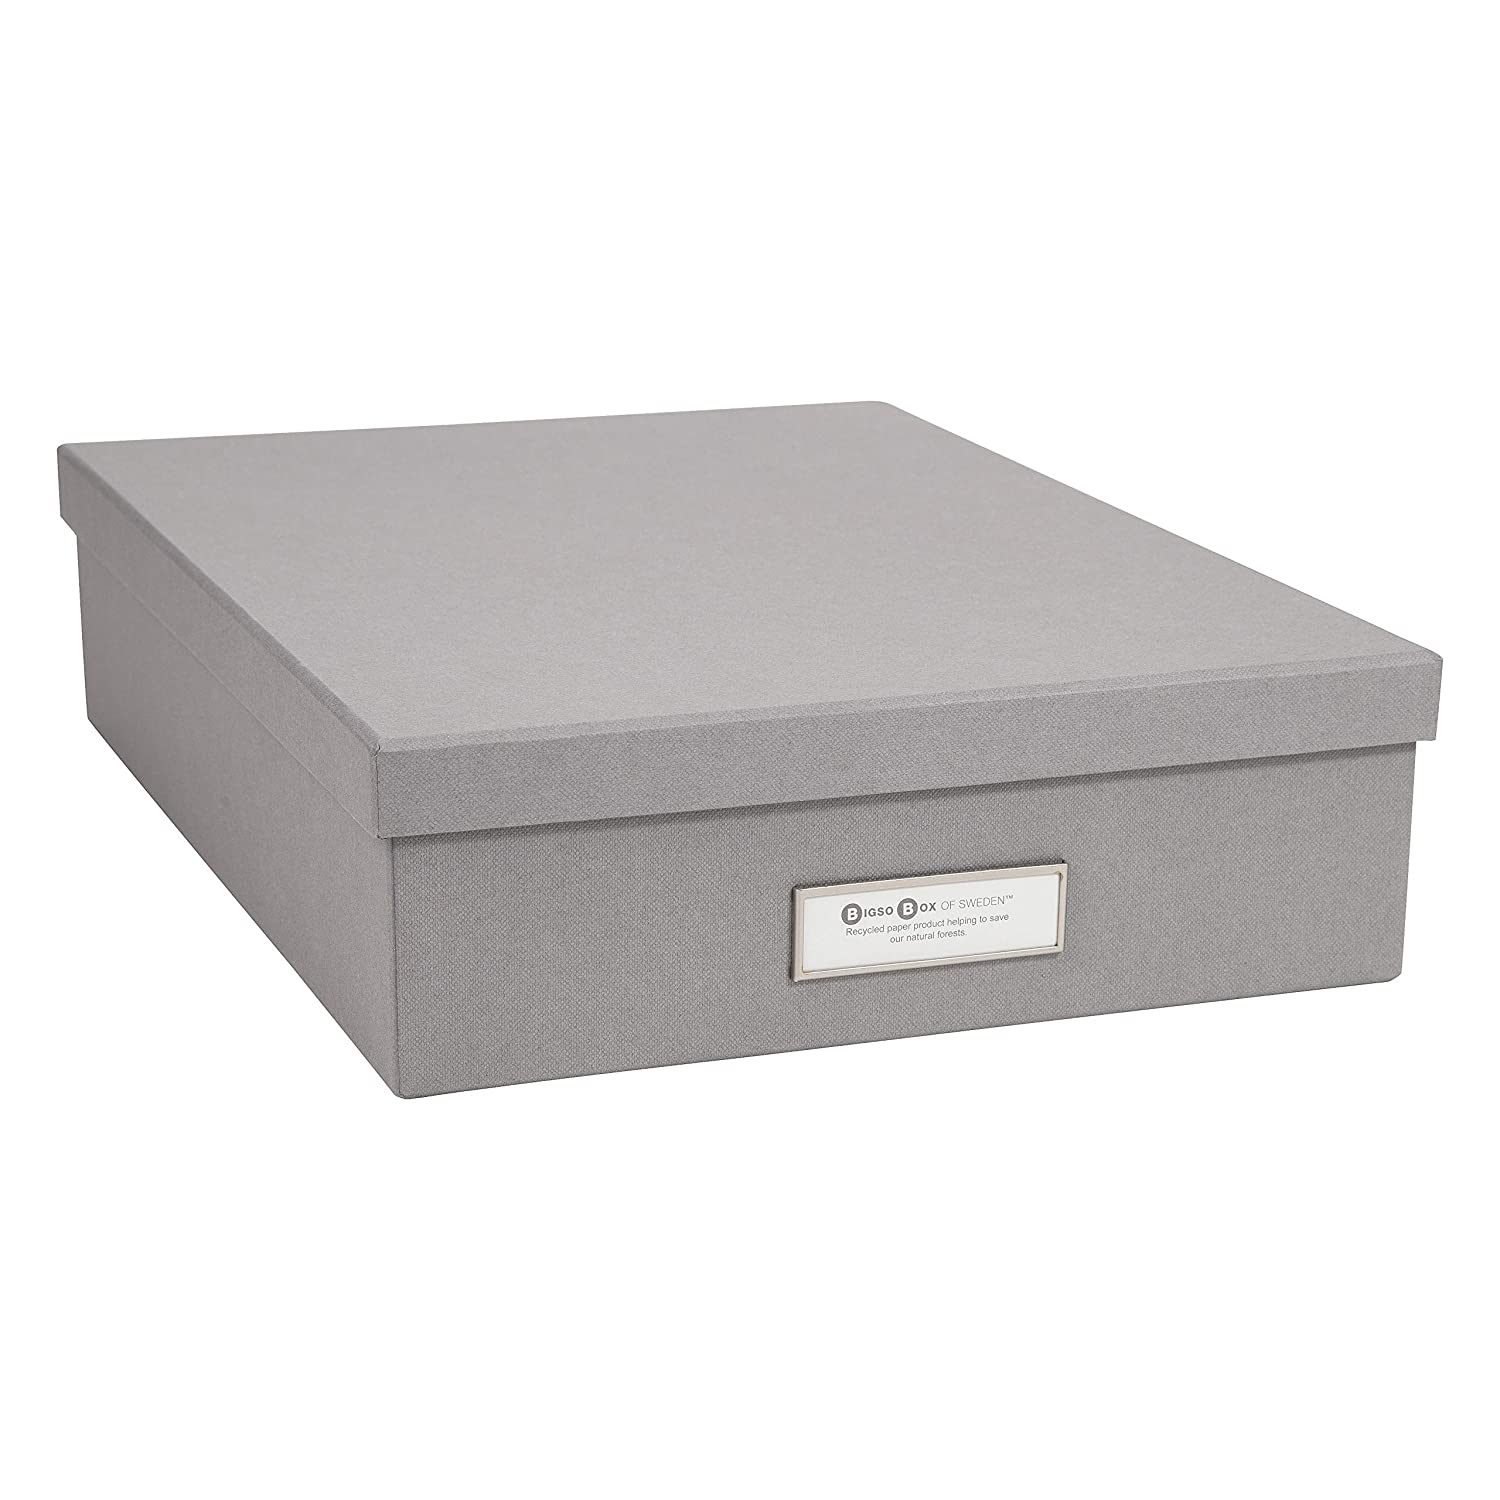 Bigso Oskar Document/Letter Box, Grey 945154141